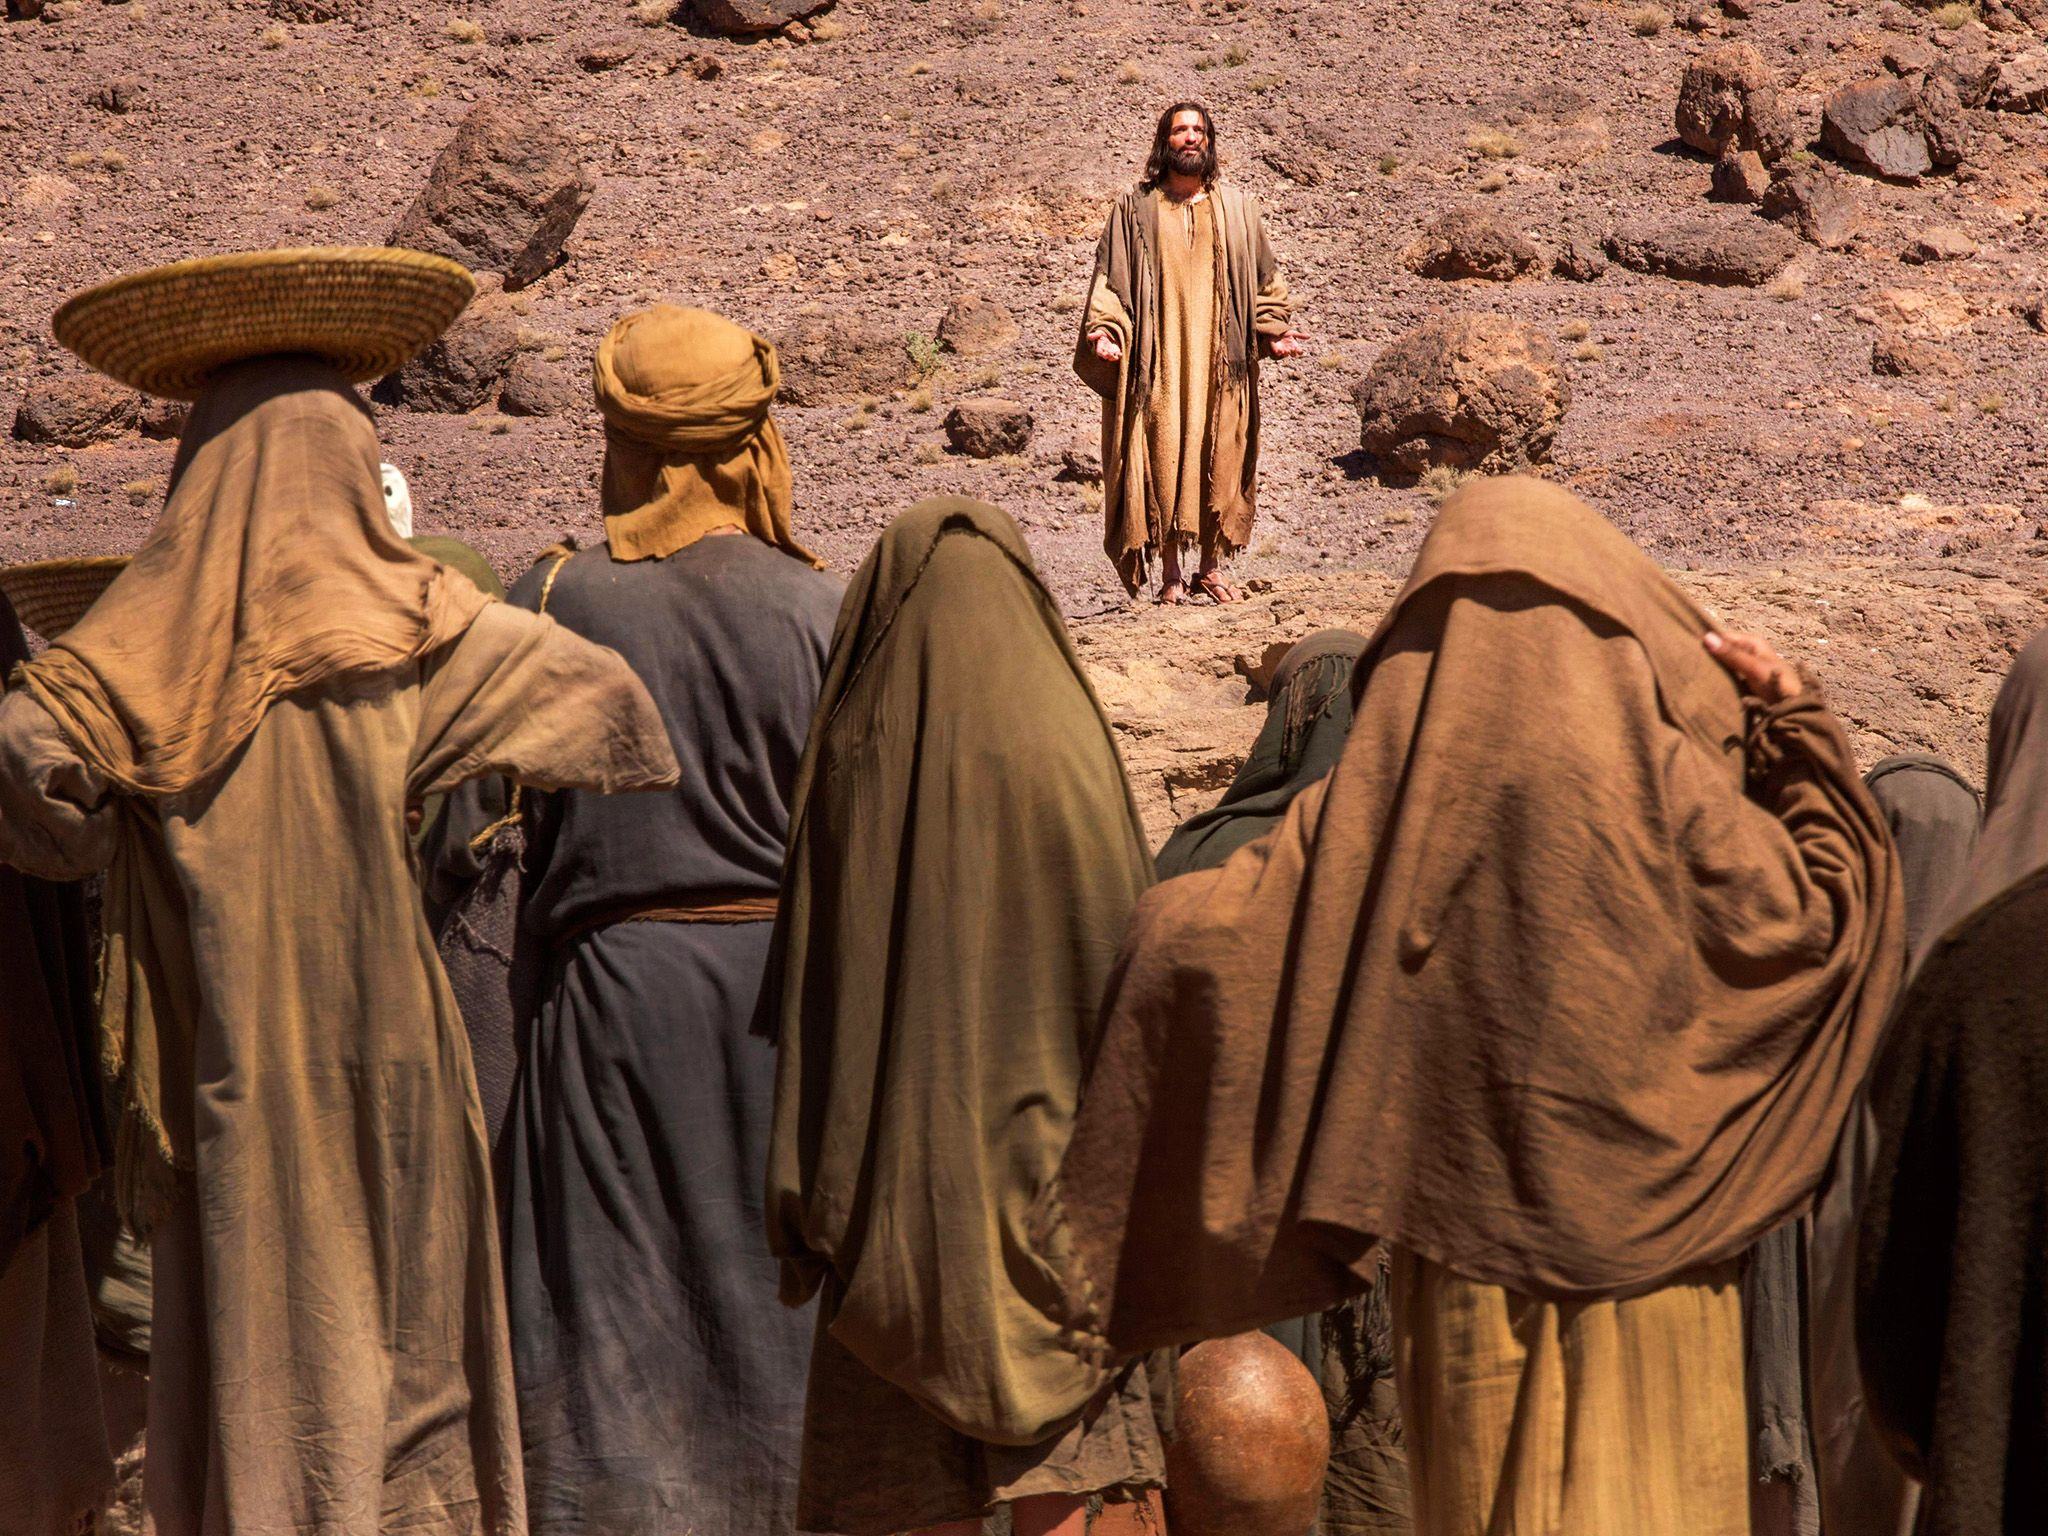 National Geographic Channel's Killing Jesus. This image is from Killing Jesus. [Photo of the day - مارس 2015]